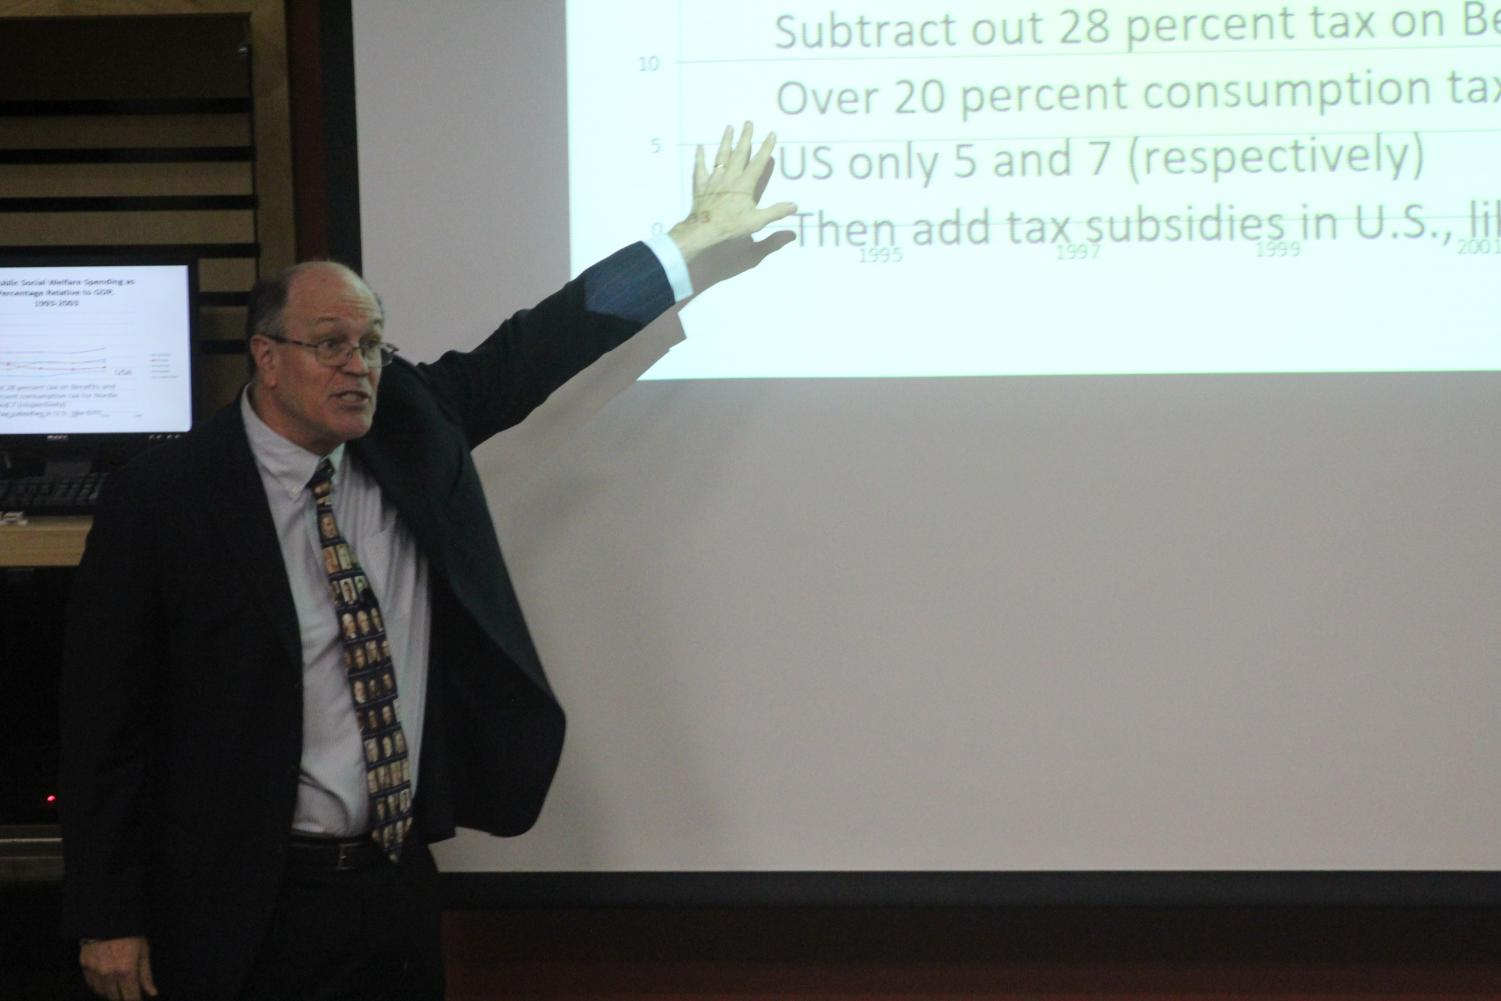 Price Fishback presented comparisons on welfare systems in the U.S. and the Nordic countries.